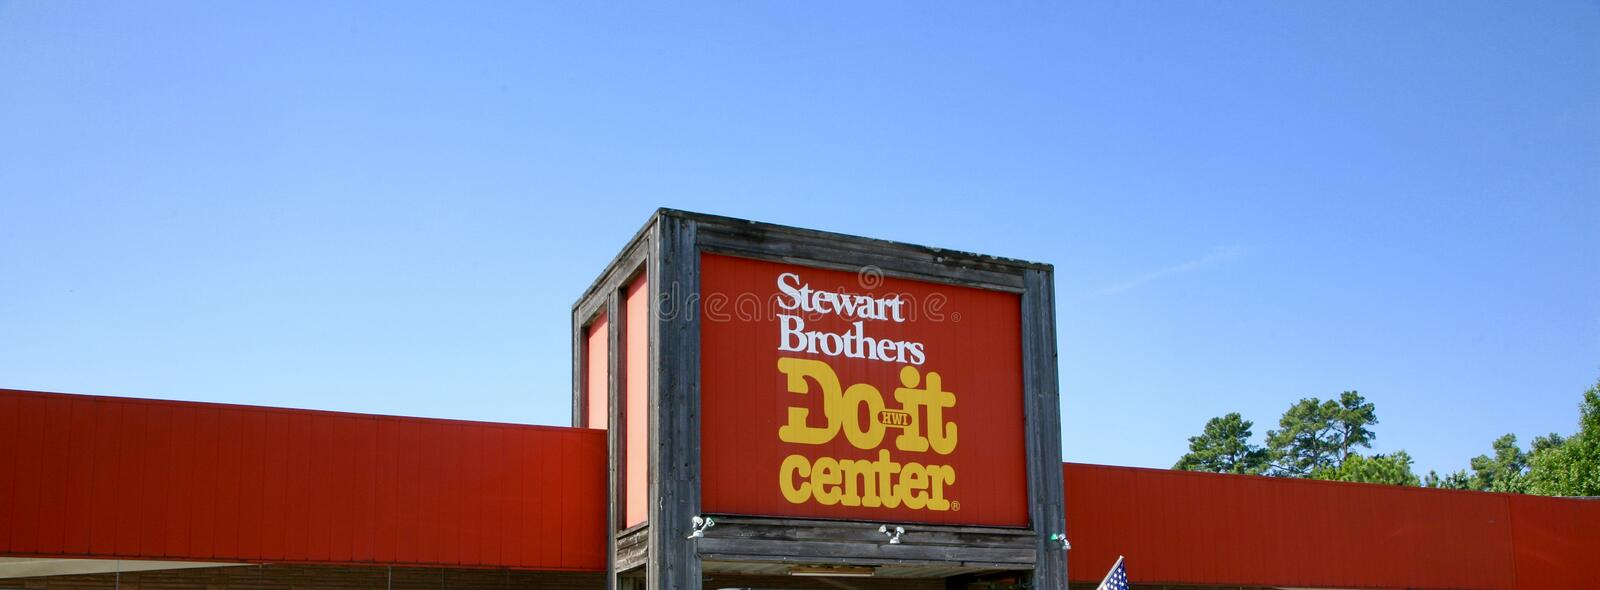 Download Stewart Brothers Do It Center Editorial Image   Image: 94281010